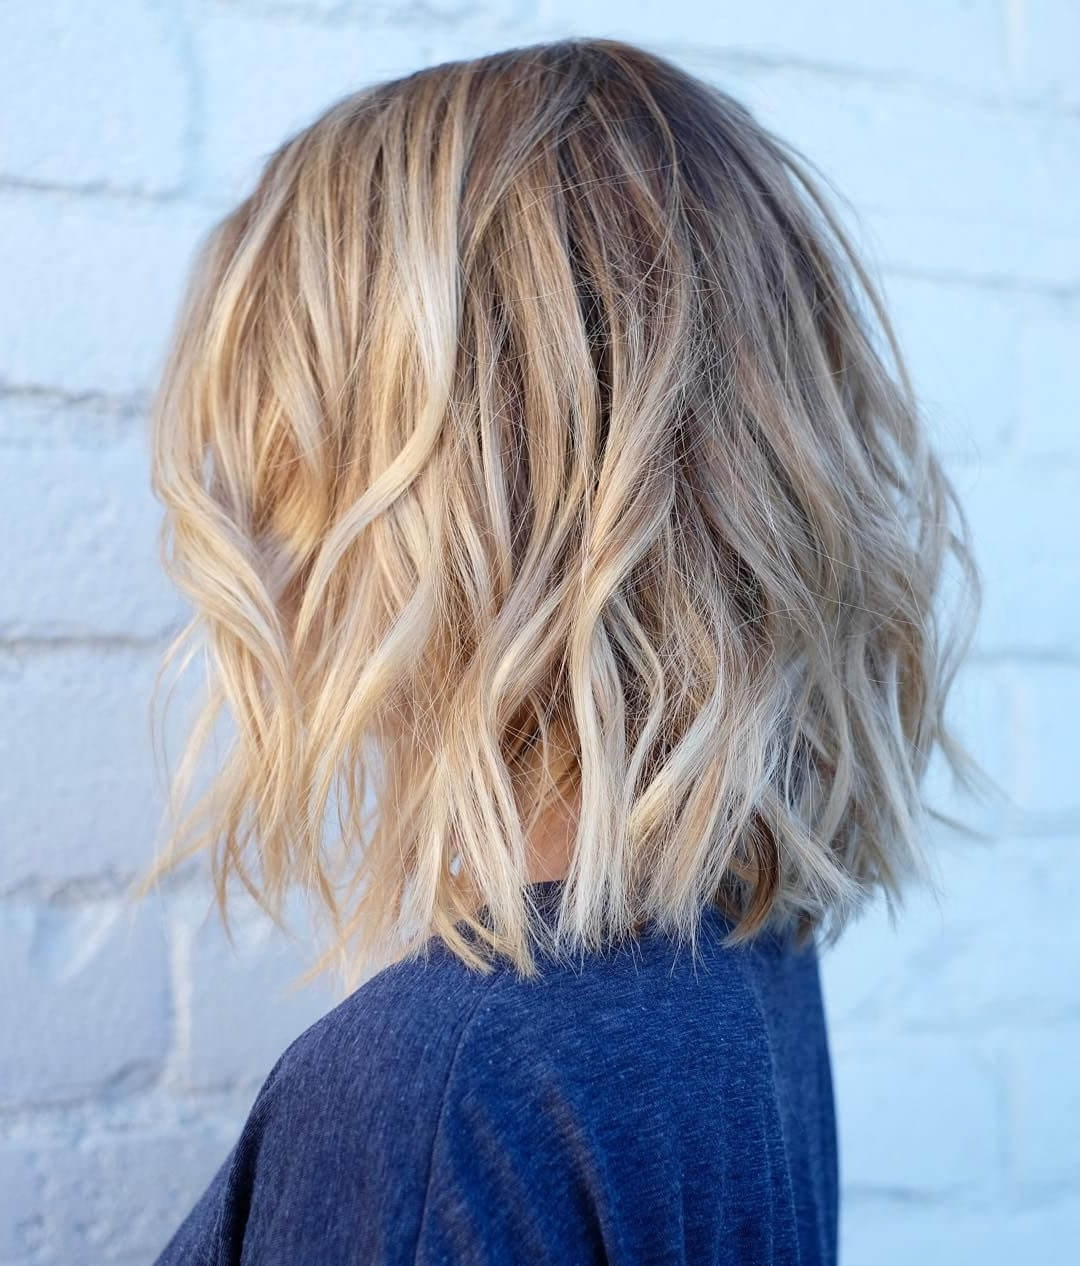 2017 Dark Blonde Into White Hairstyles For 50 Fresh Short Blonde Hair Ideas To Update Your Style In  (View 3 of 20)